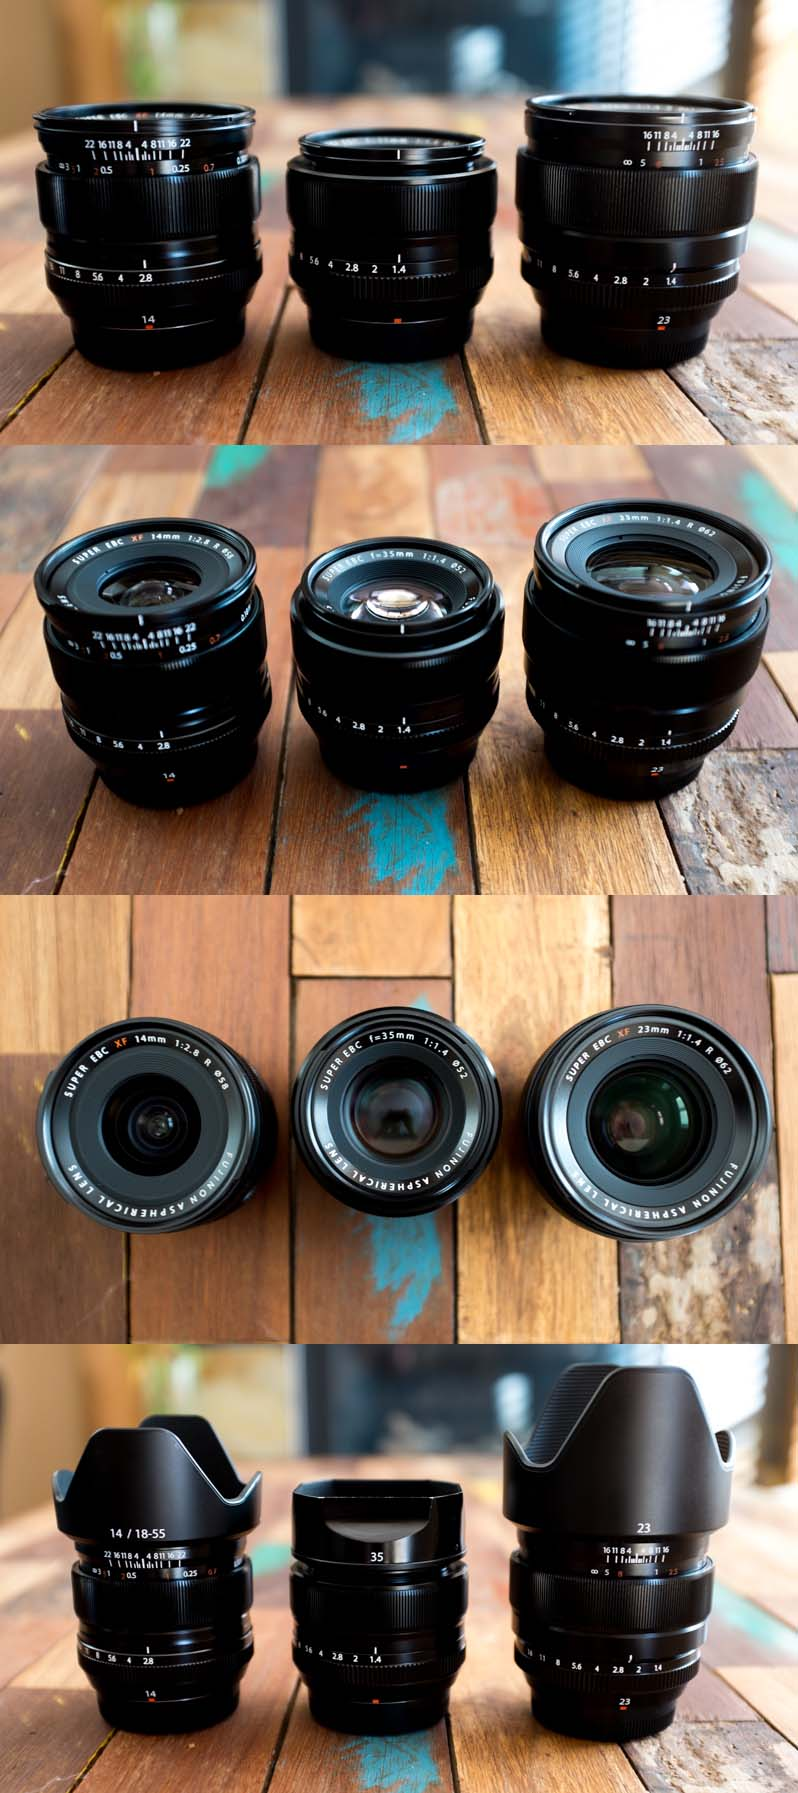 XF 14mm (left) | XF 35mm (centre) | XF 23mm (right)